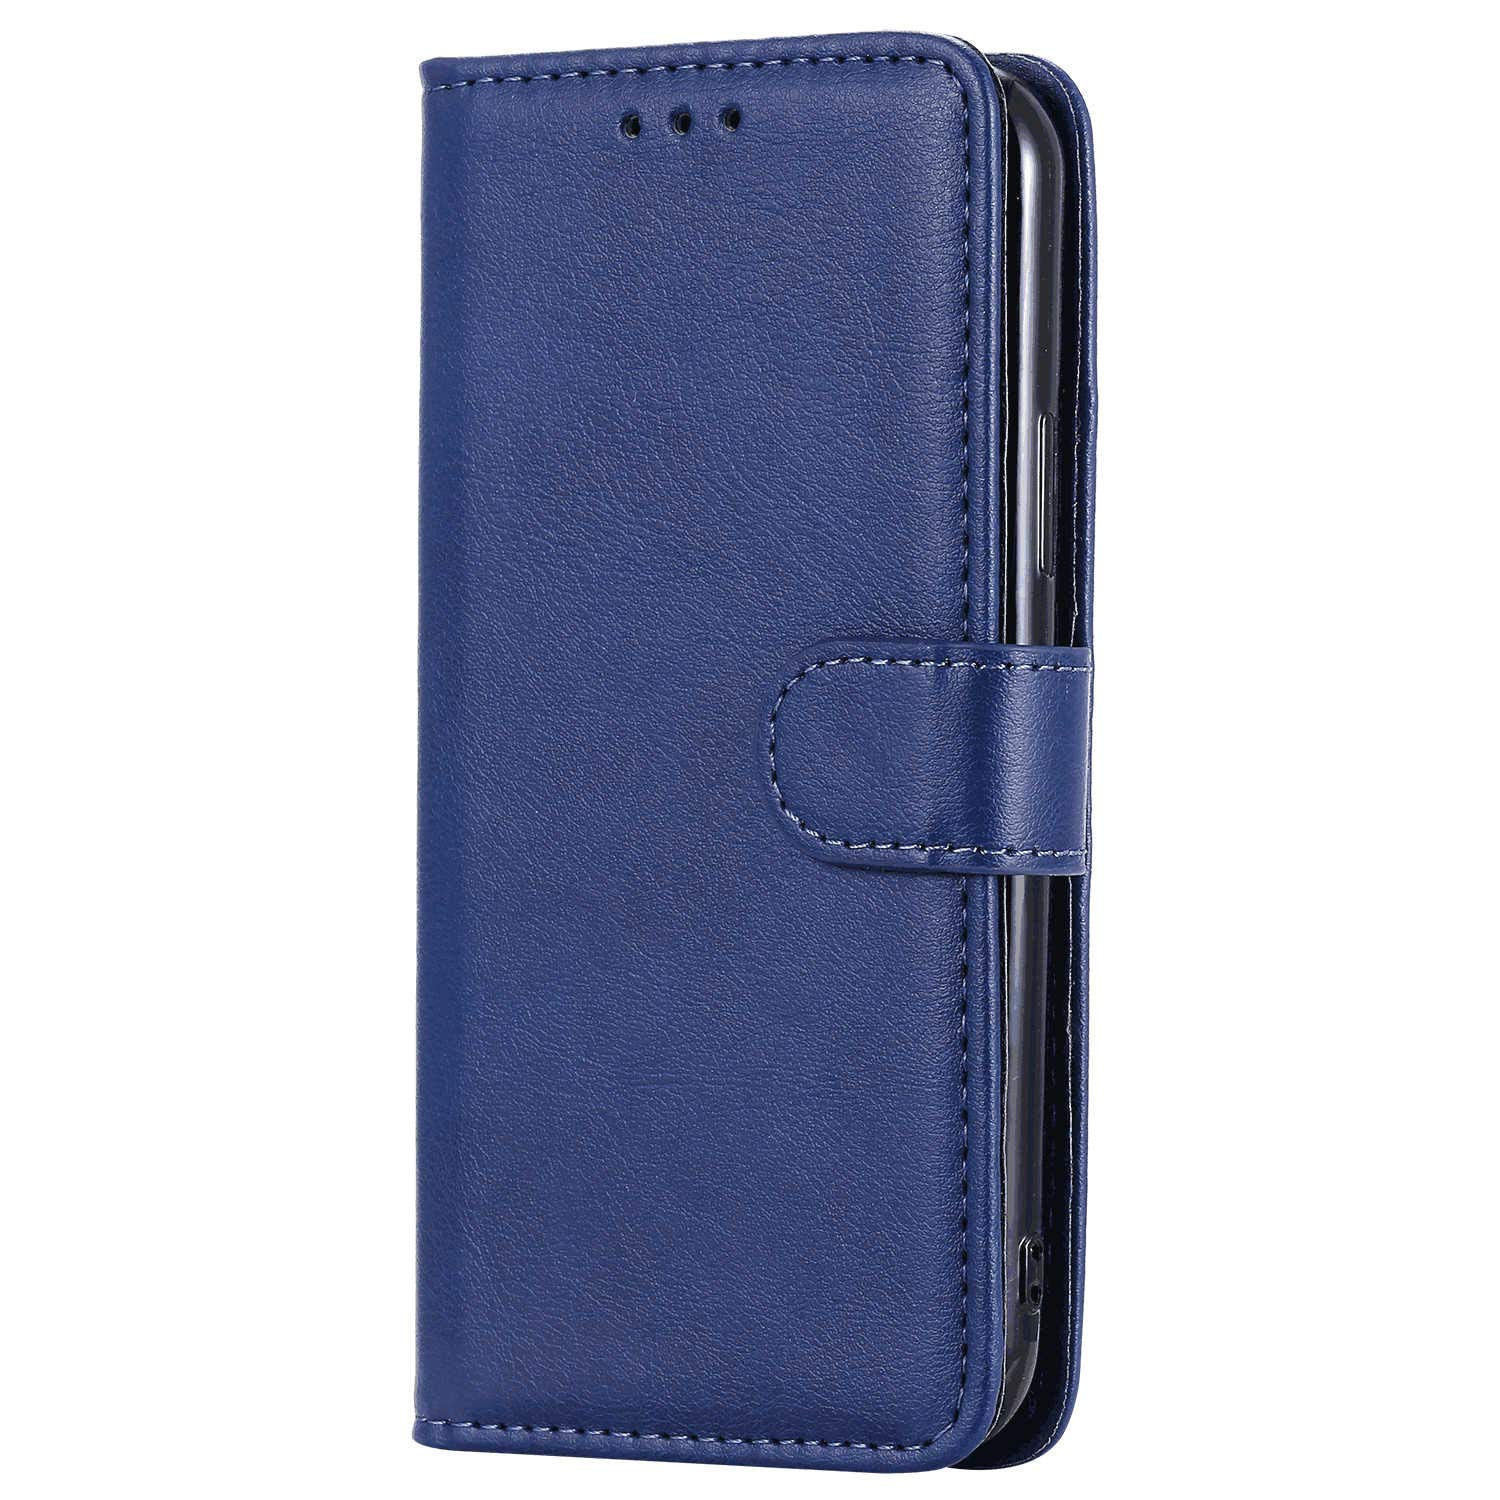 Leather Cover Compatible with iPhone 11 Pro Max, Blue Wallet Case for iPhone 11 Pro Max